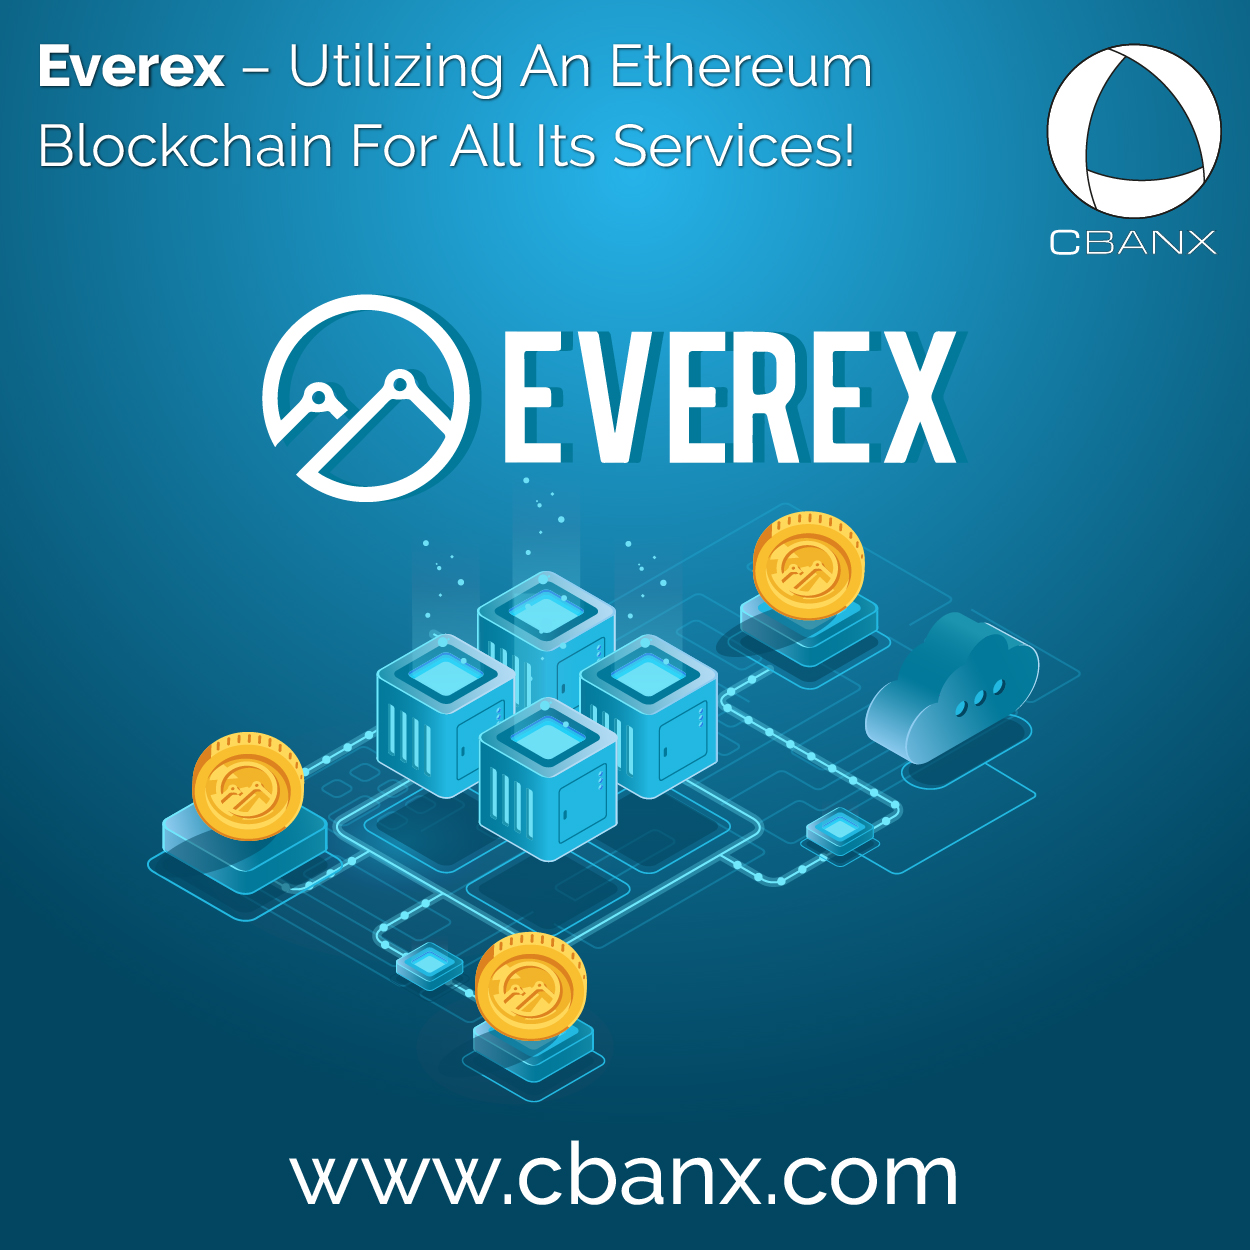 Everex – Utilizing An Ethereum Blockchain For All Its Services!